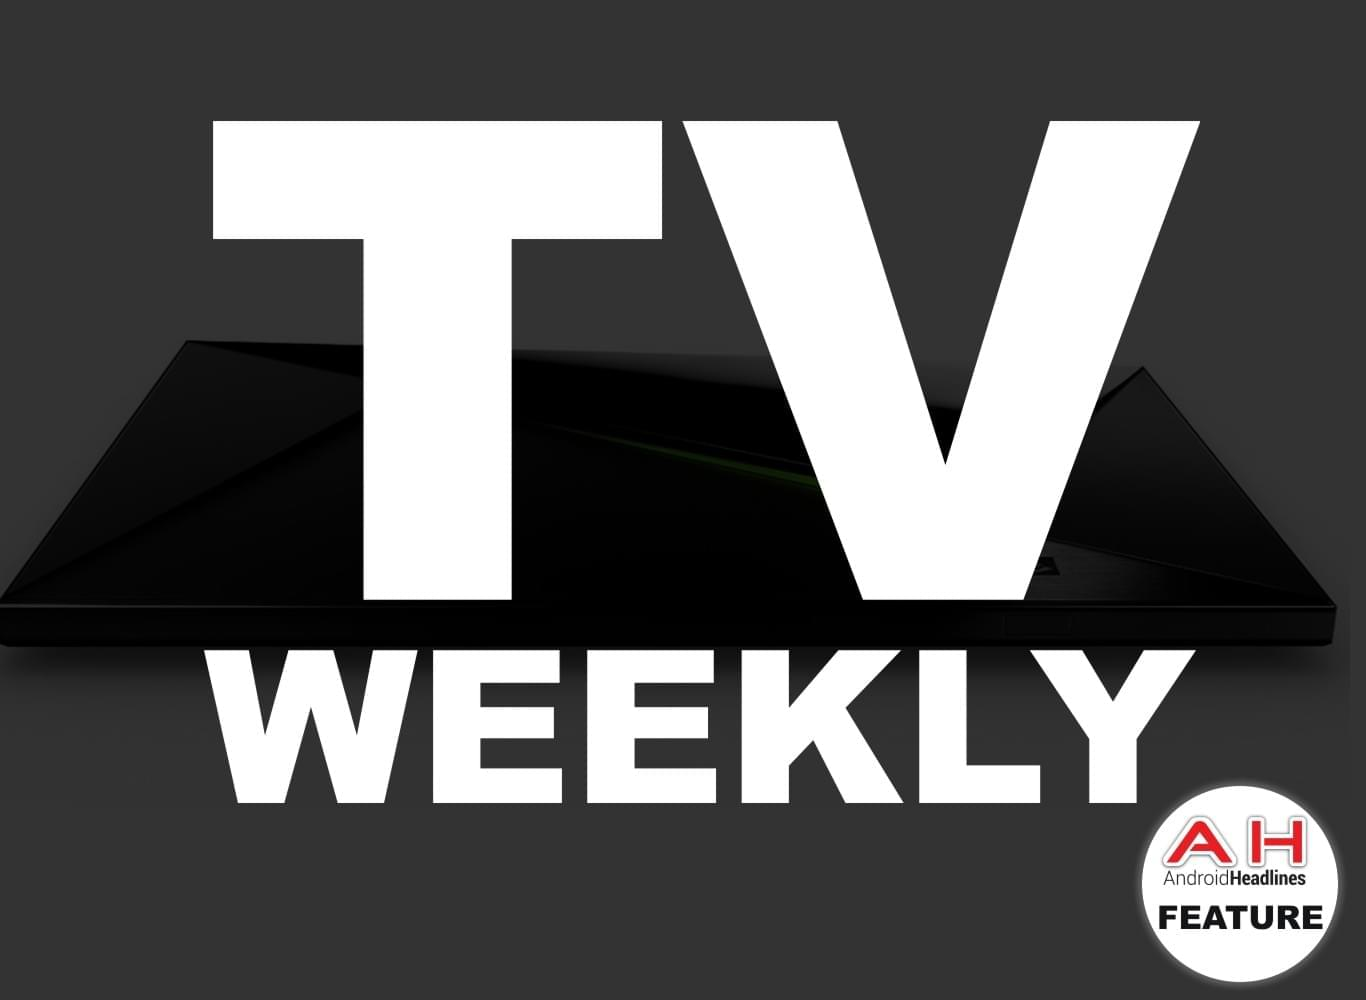 Directv now netflix big week for tv just not android tv directv now netflix big week for tv just not android tv androidheadlines solutioingenieria Choice Image